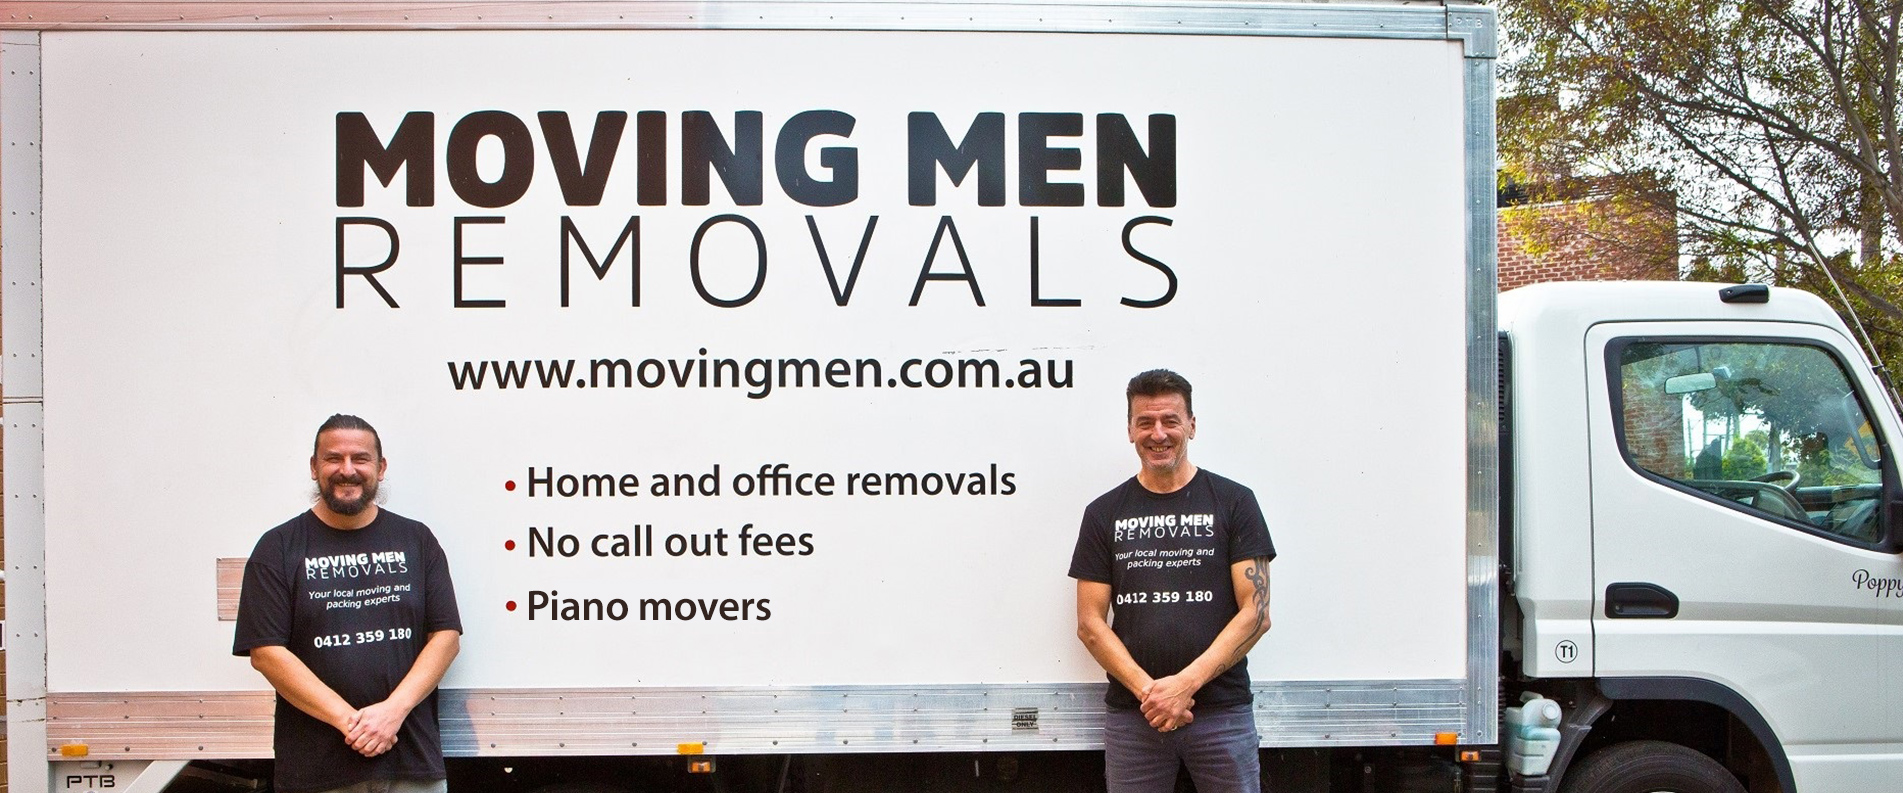 Moving Men Removals With 2 Men